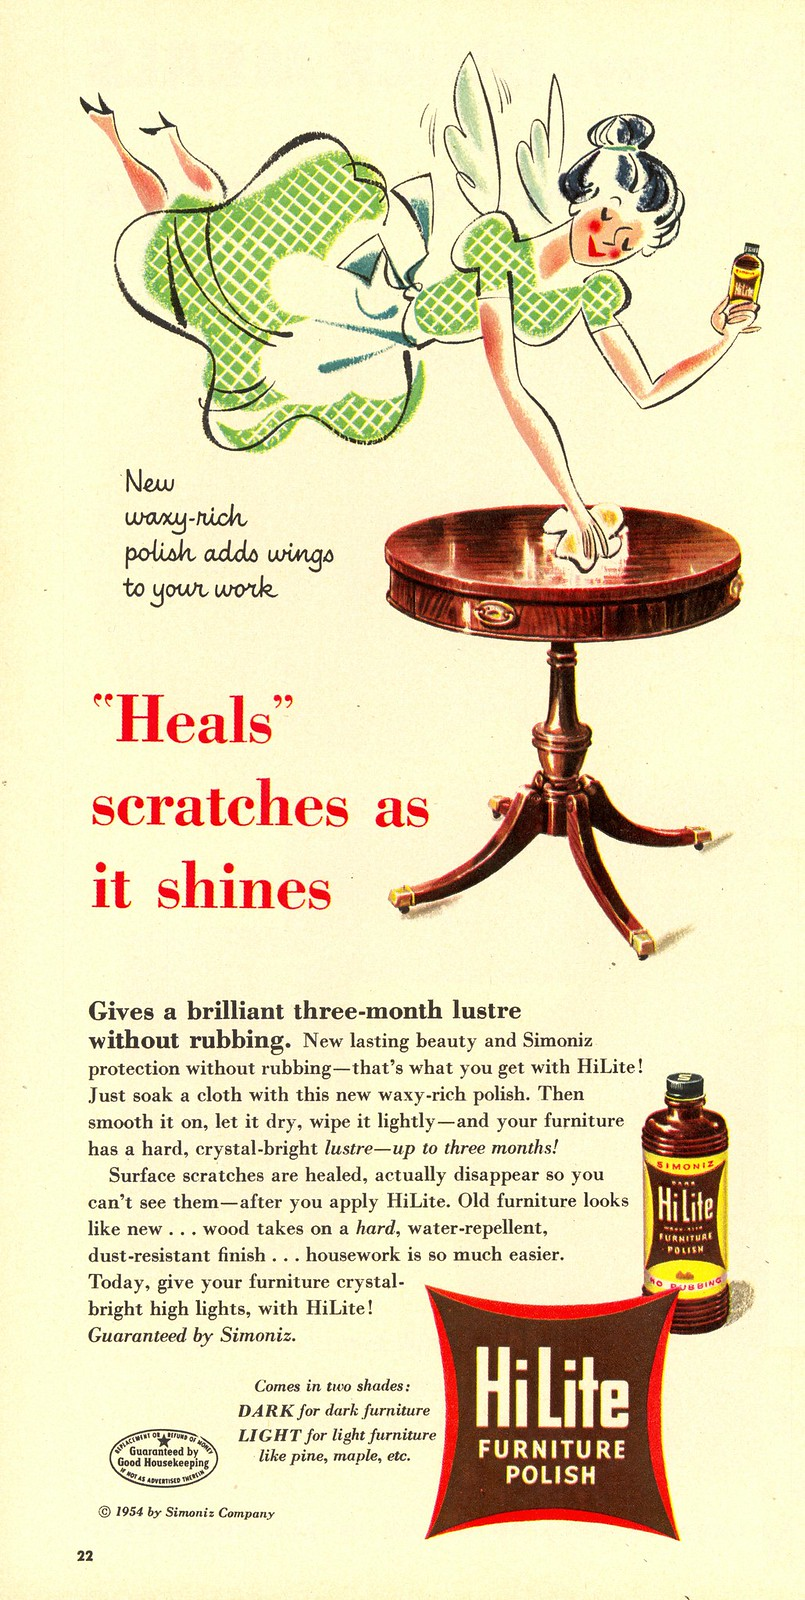 HiLite Furniture Polish - published in Woman's Day - March 1954